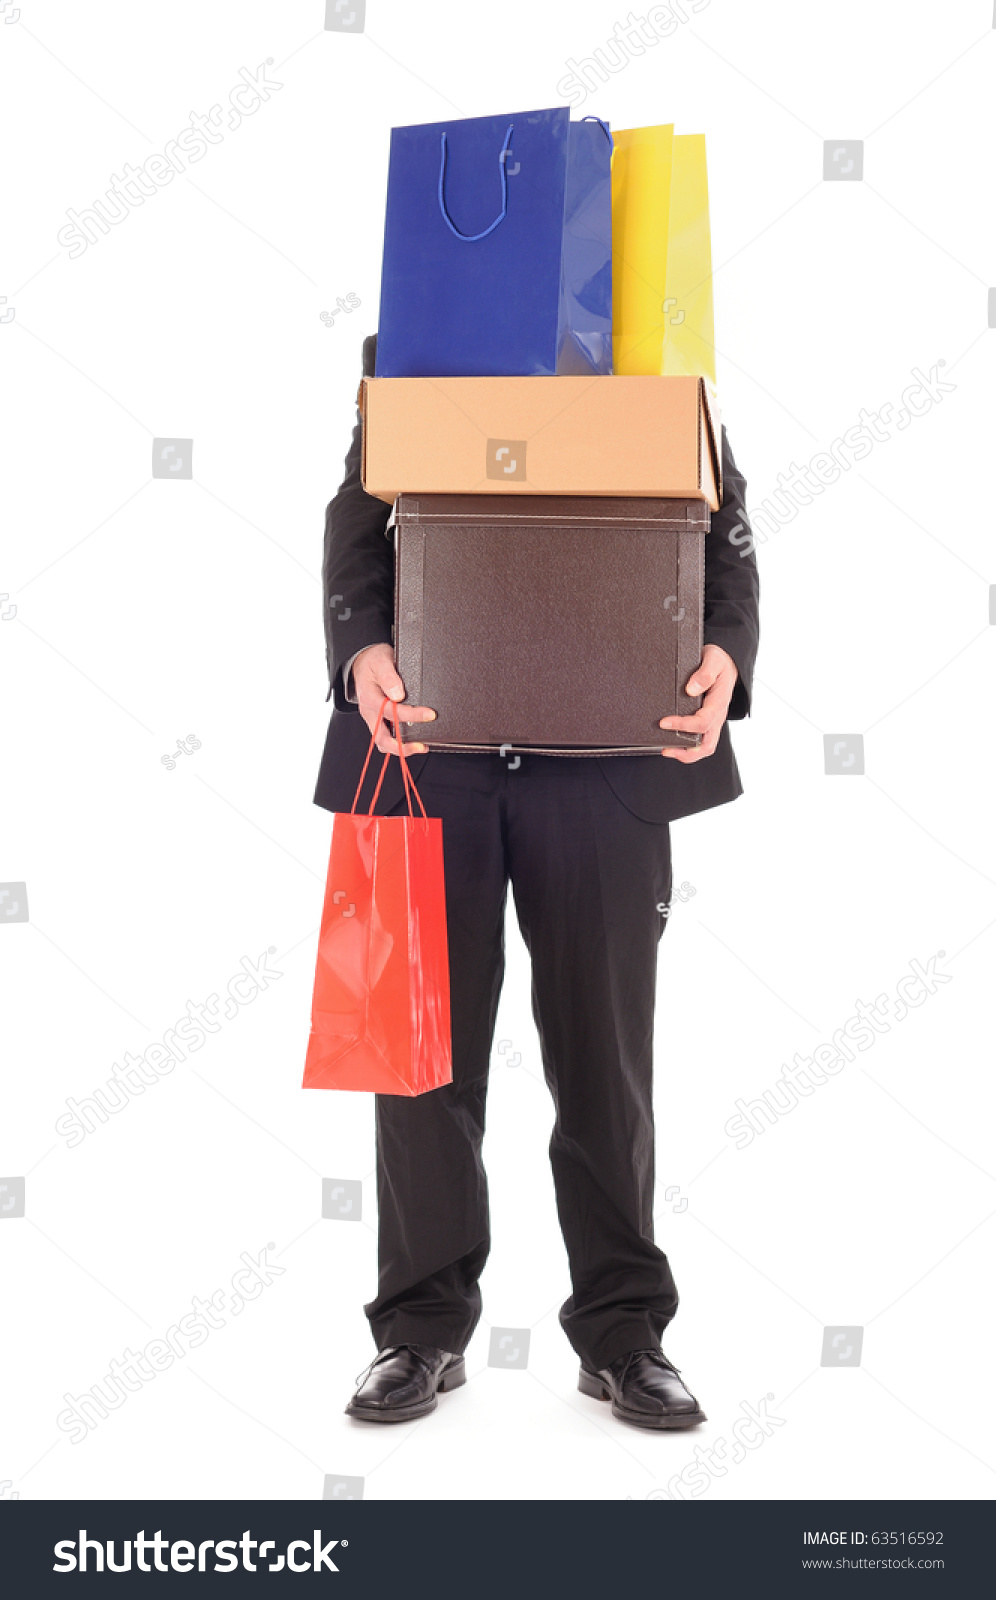 Man Carrying Shopping Bags Stock Photo 63516592 - Shutterstock